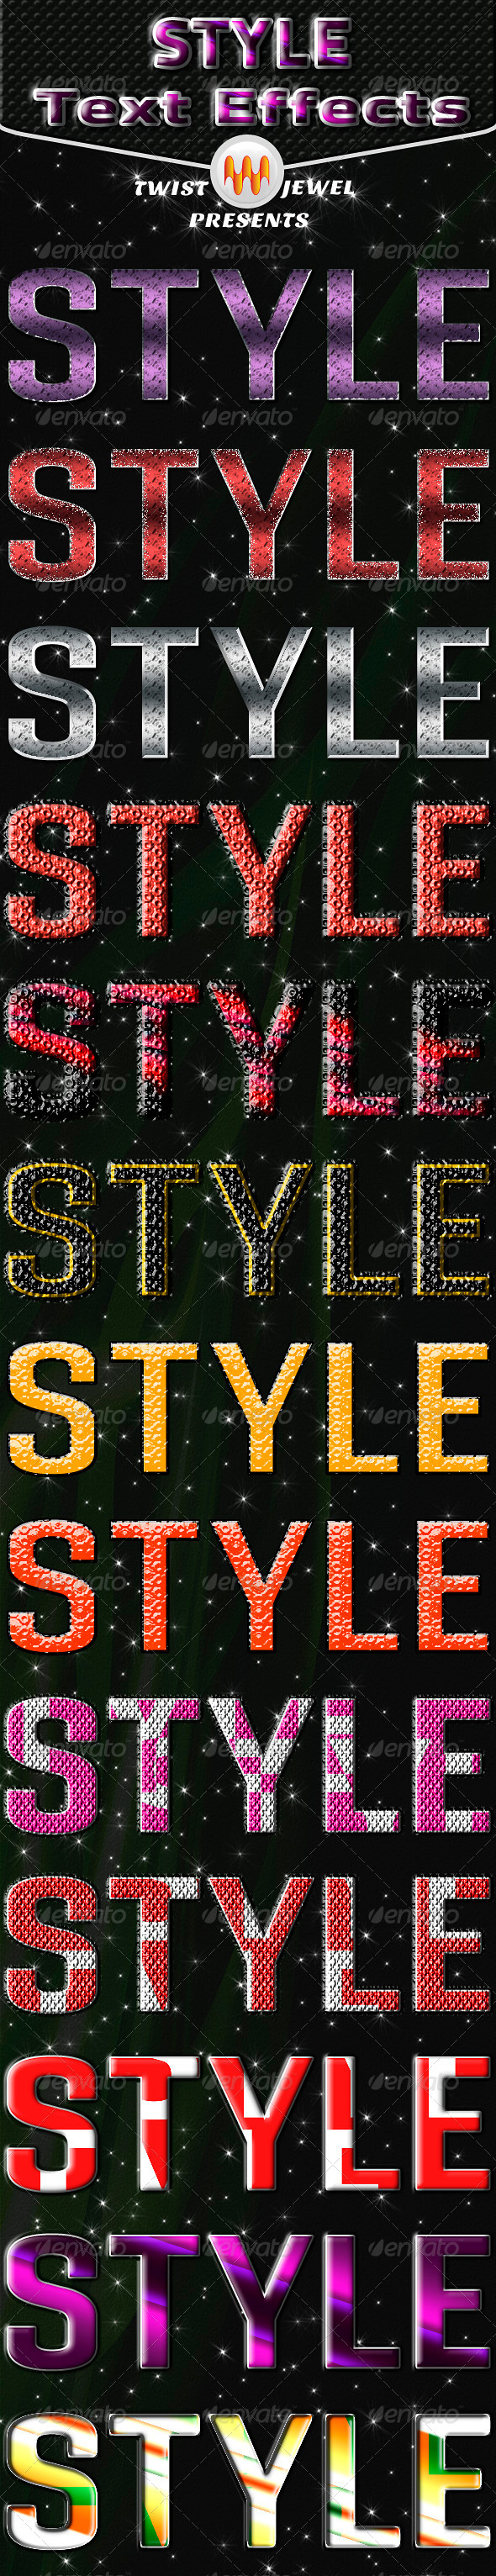 GraphicRiver Style Text Effects 6193895